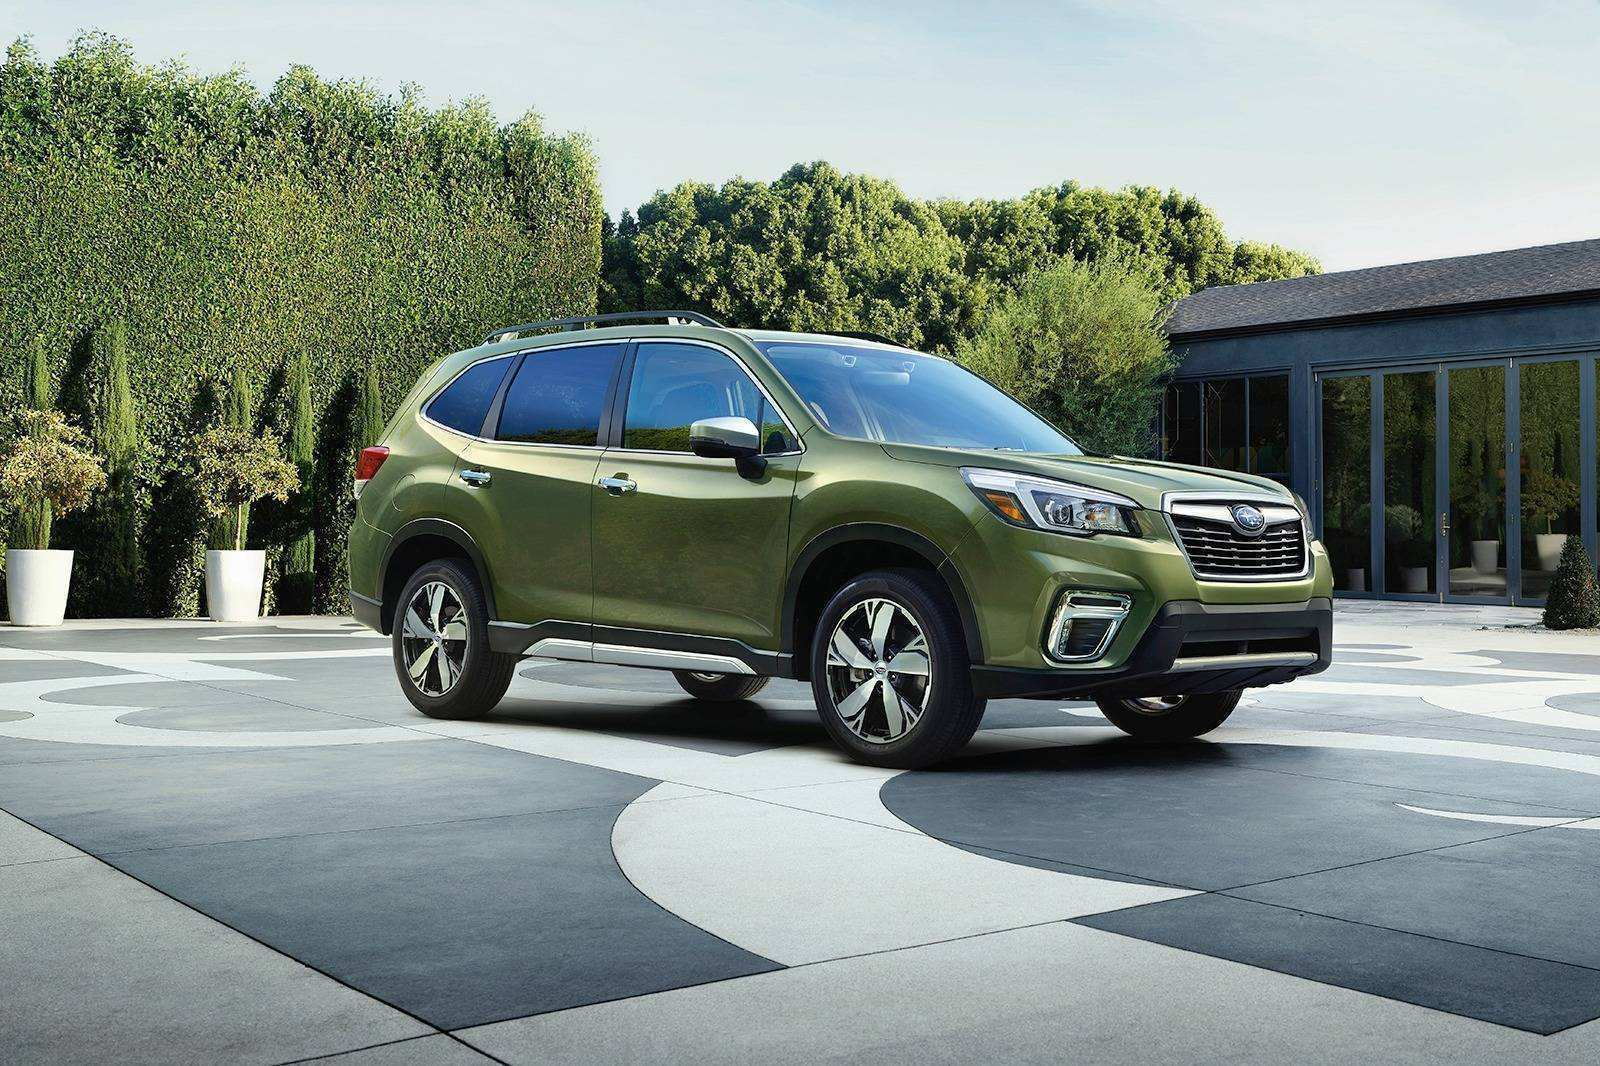 39 The Subaru Forester 2019 Gas Mileage Rumors